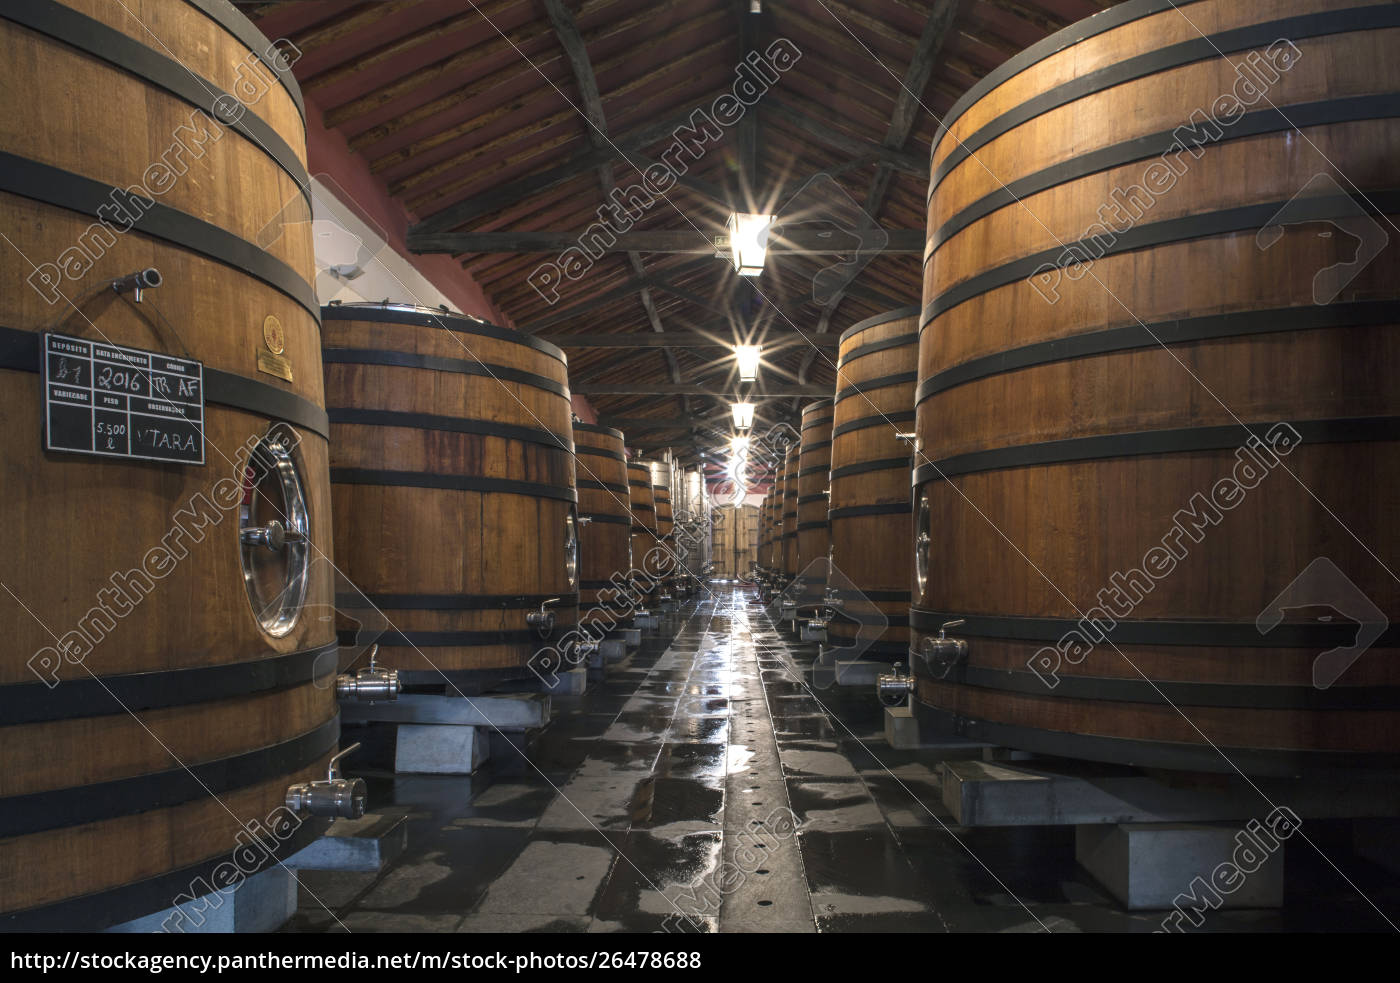 wine, barrels, storing, award-winning, portuguese, wine - 26478688